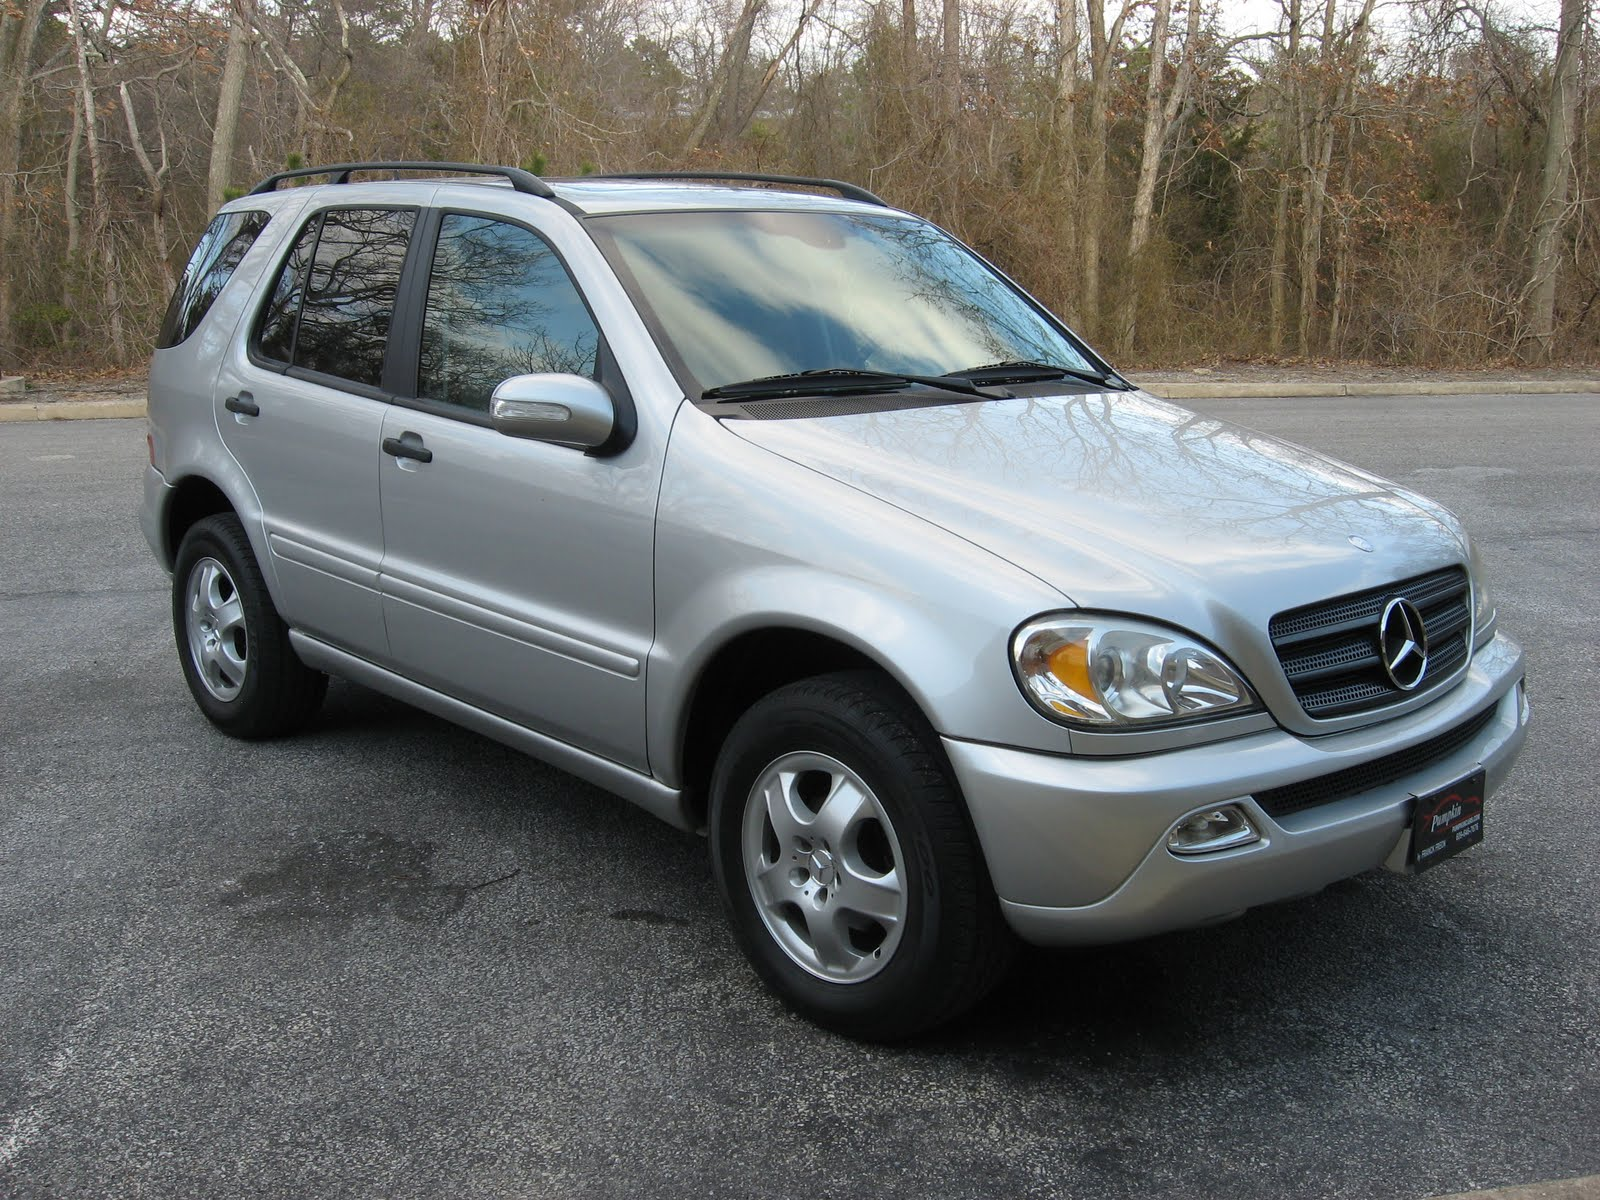 Pumpkin fine cars and exotics 2003 mercedes benz ml320 for 2003 mercedes benz suv